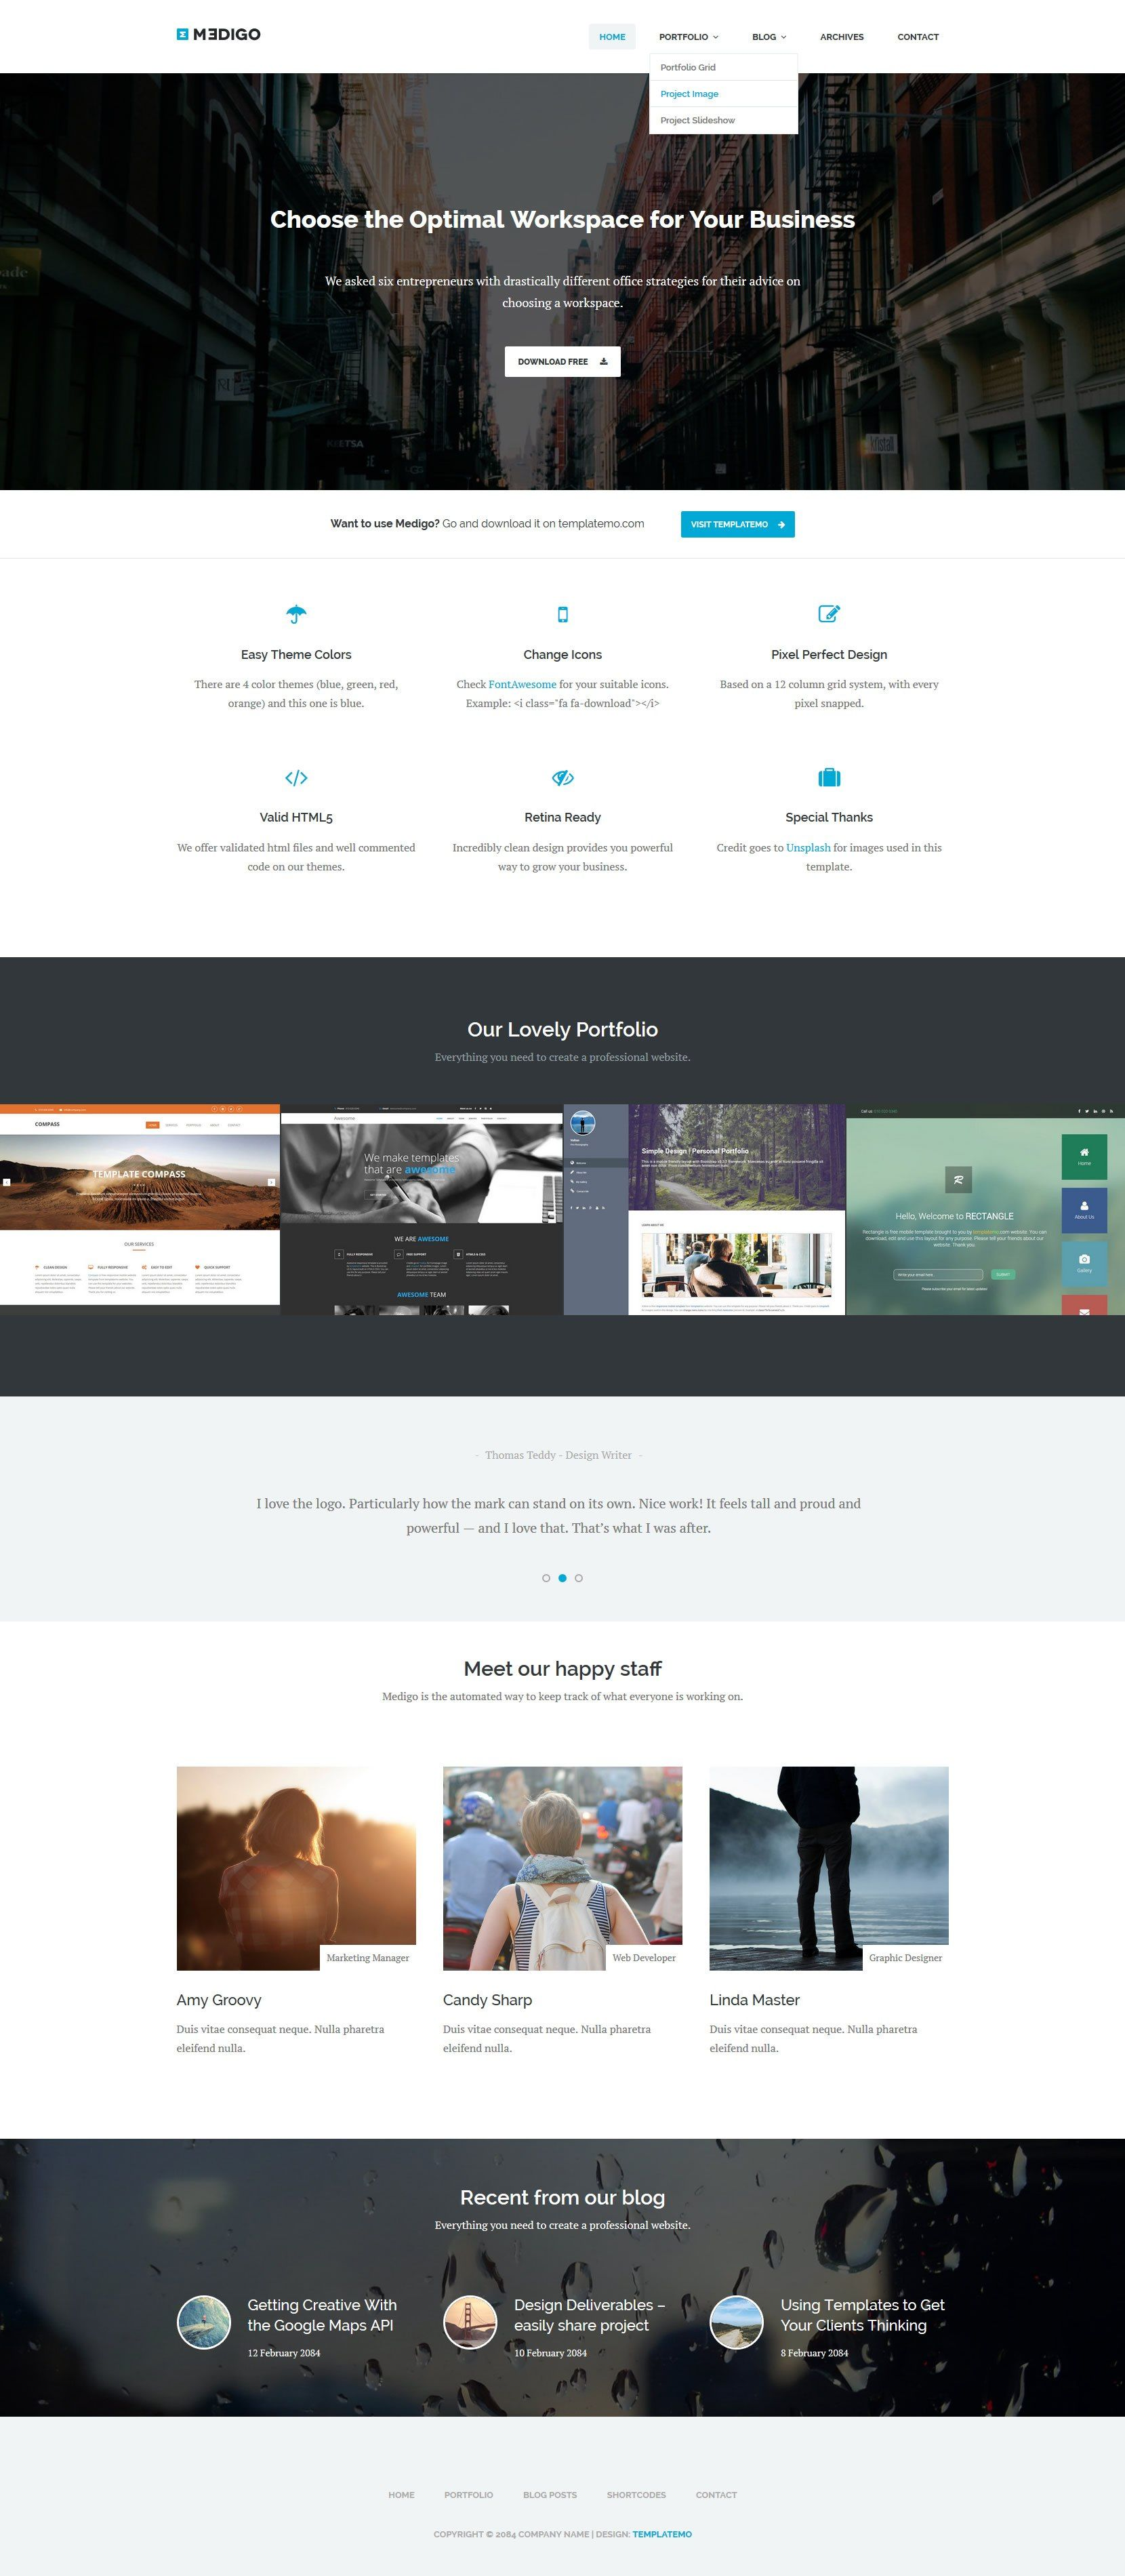 Free Template Medigo For Free Css Website Templates With Drop Down Menu 10 Professional Templates Ideas Css Website Templates Website Template Menu Template